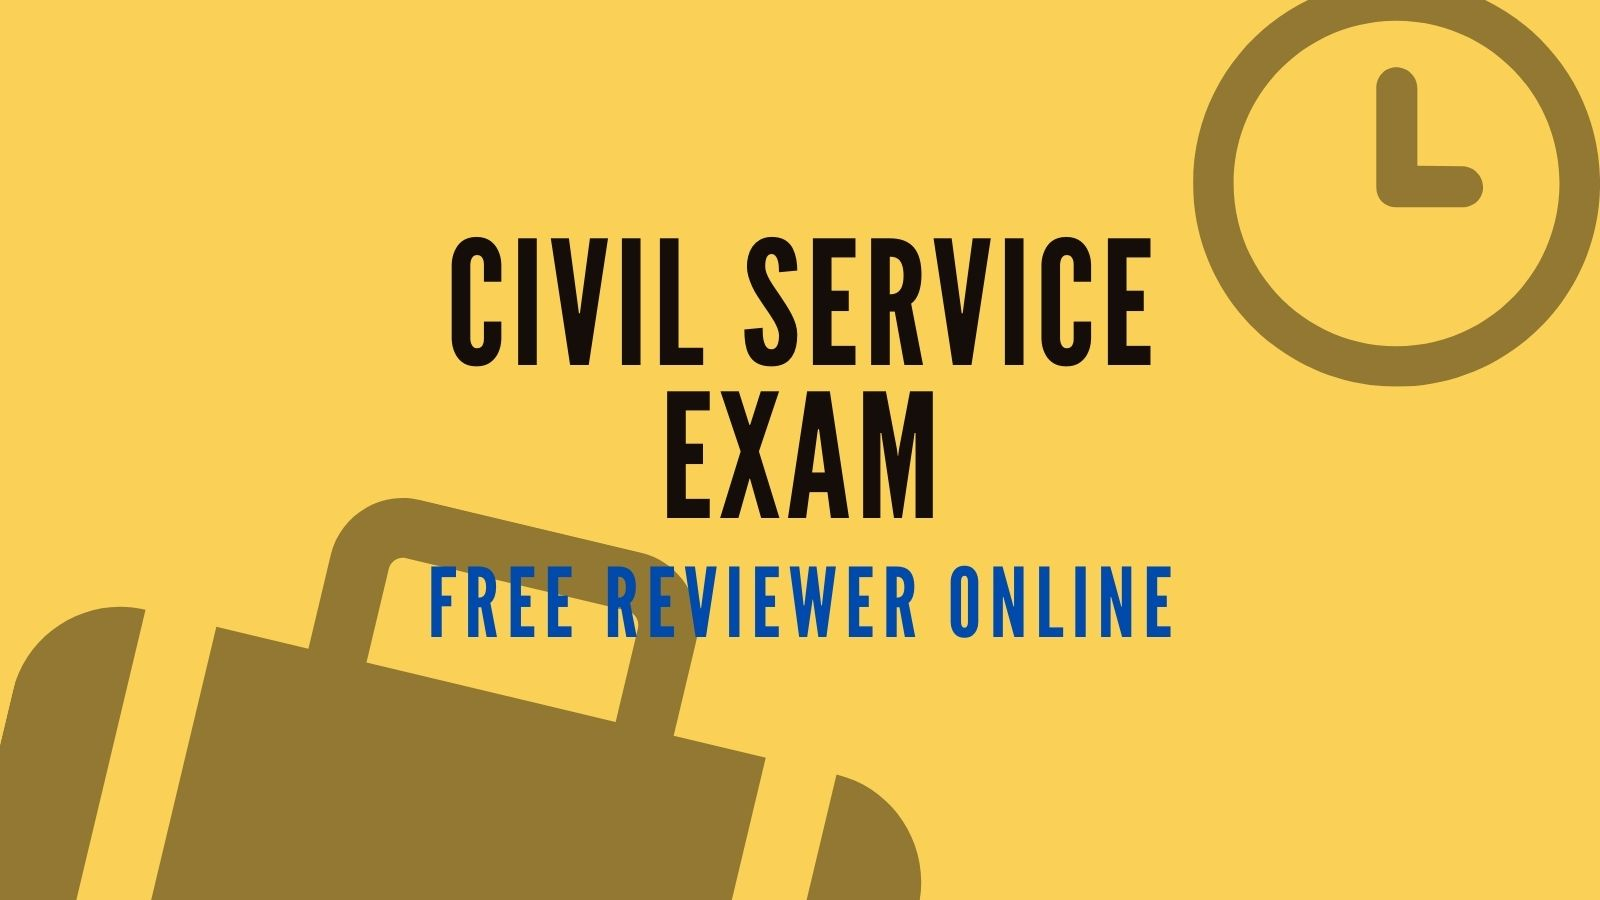 civil service exam free online reviewer philippines